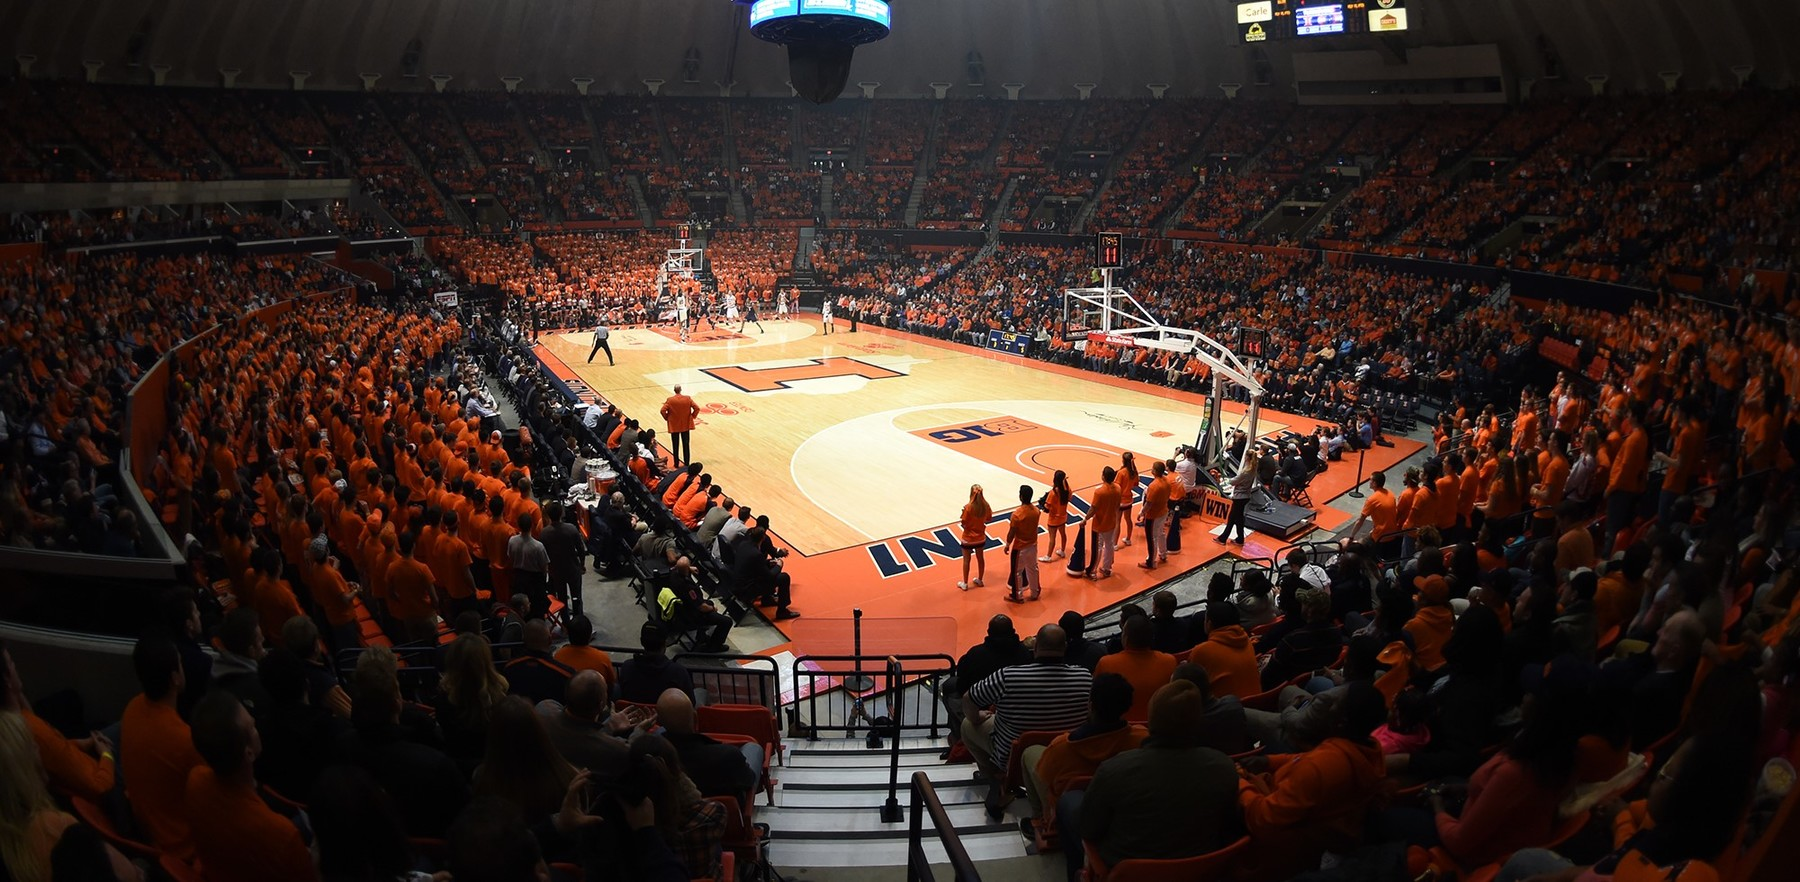 wide view of the court at the State Farm Center